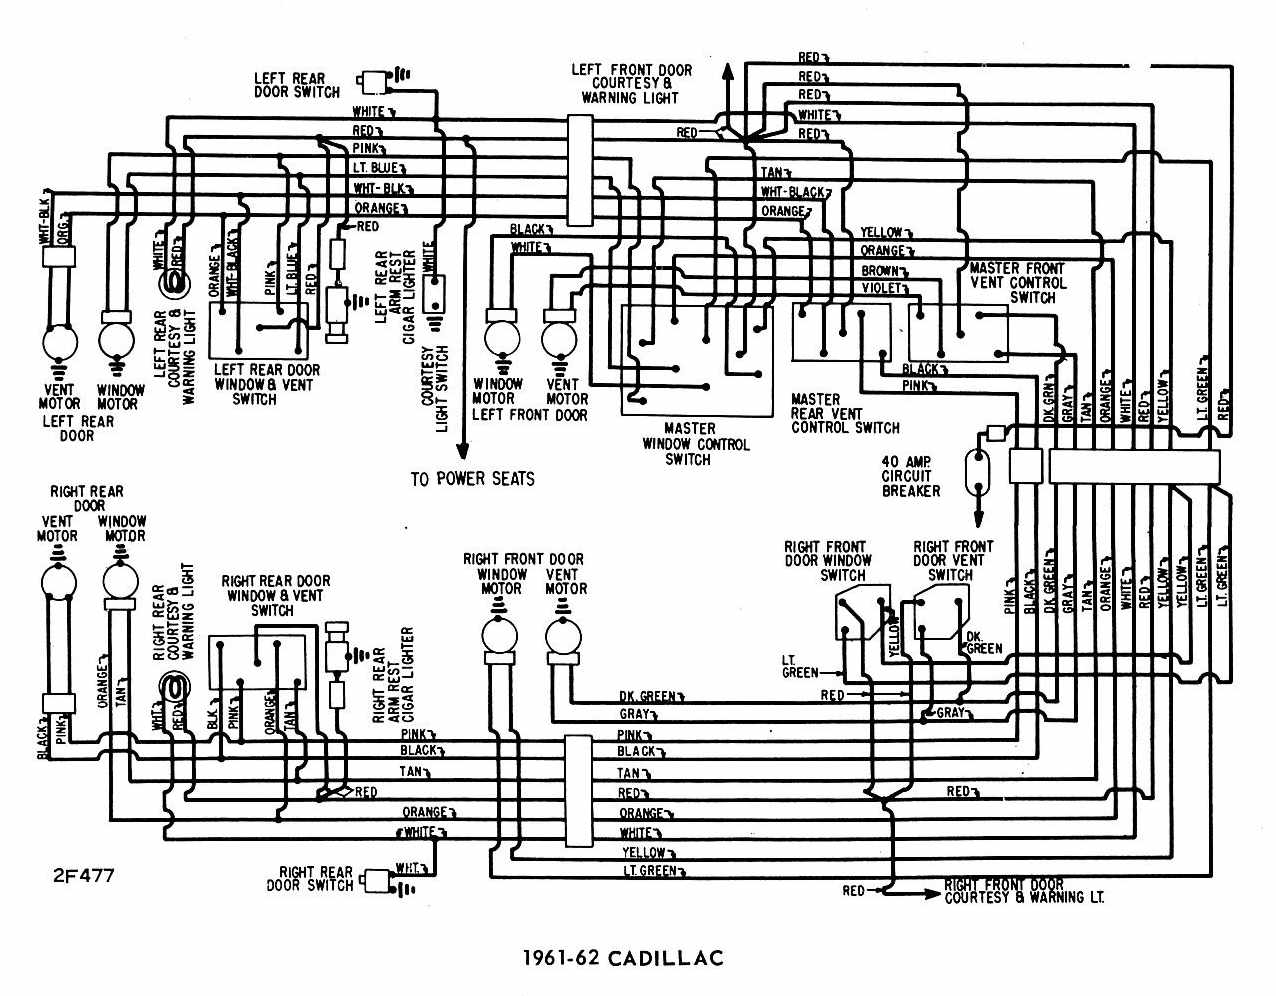 CADILLAC - Car PDF Manual, Wiring Diagram & Fault Codes DTCautomotive-manuals.net